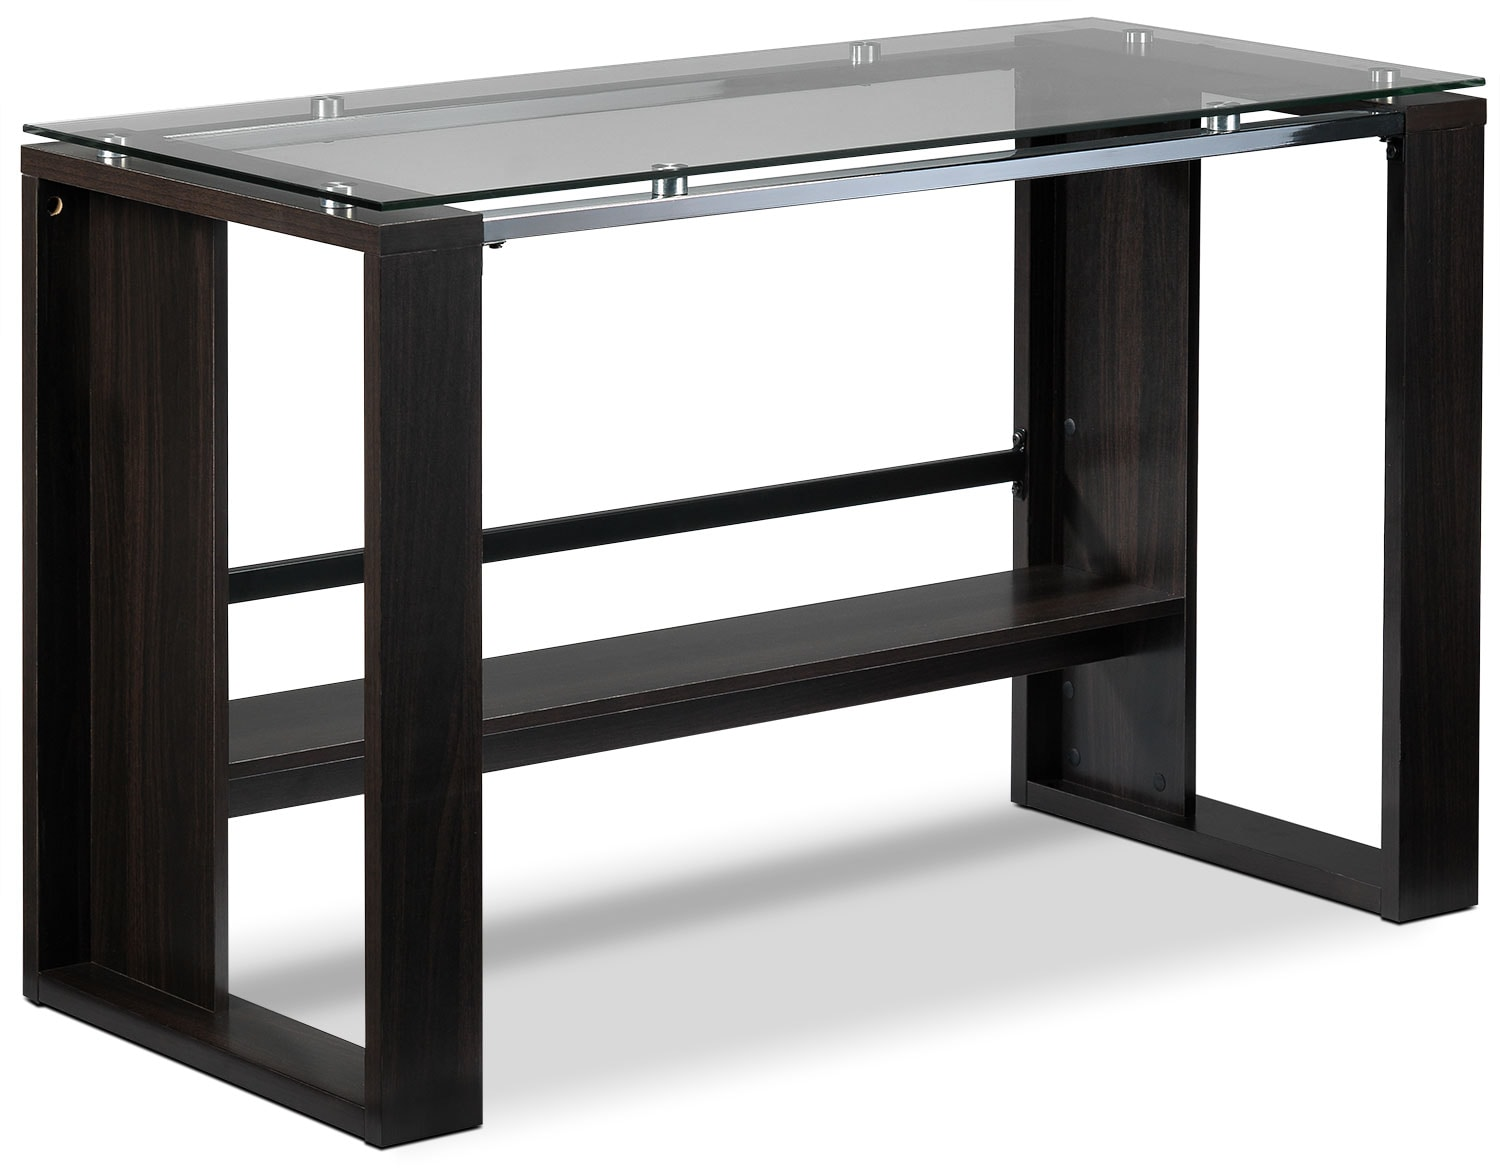 Home Office Furniture - Jasper Desk - Espresso